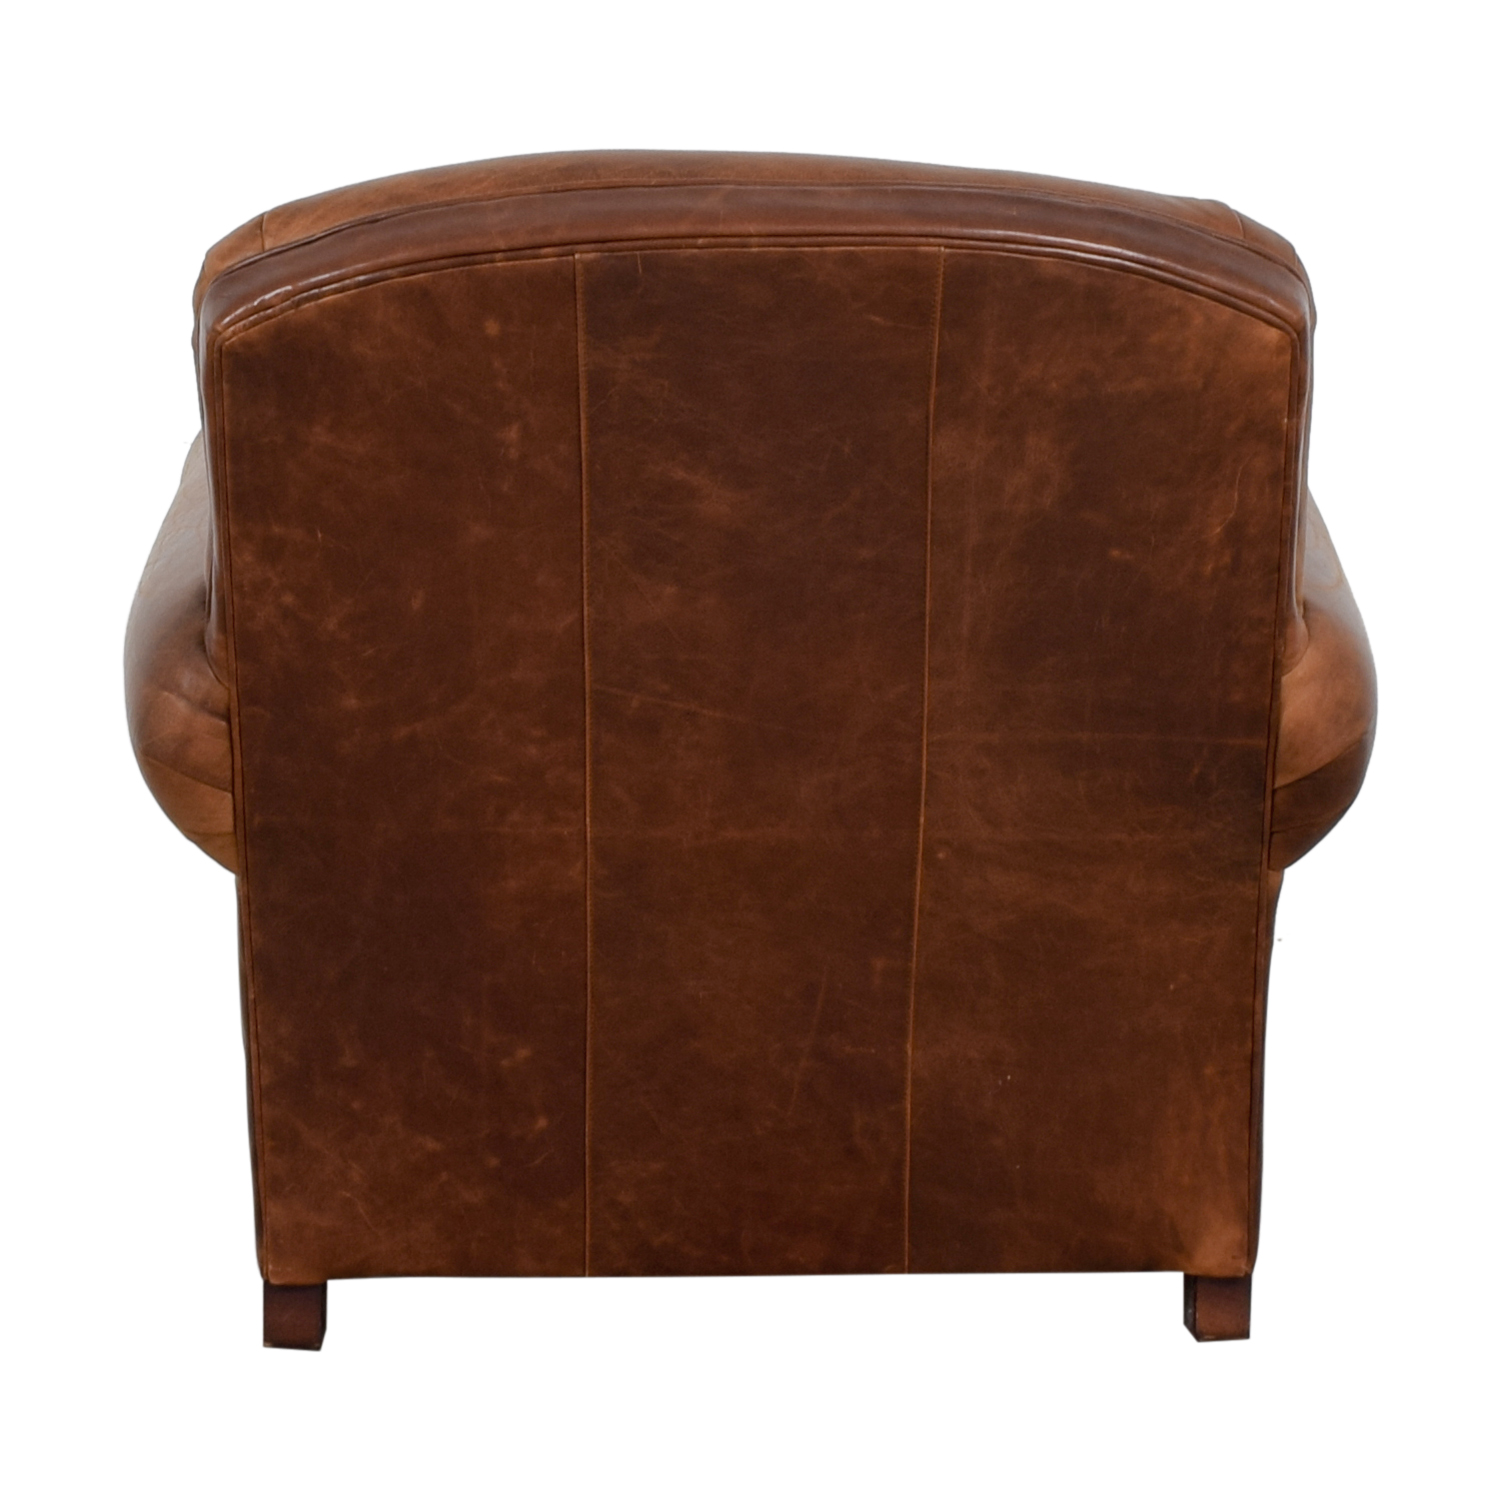 Crate & Barrel Crate & Barrel Brown Leather Club Chair